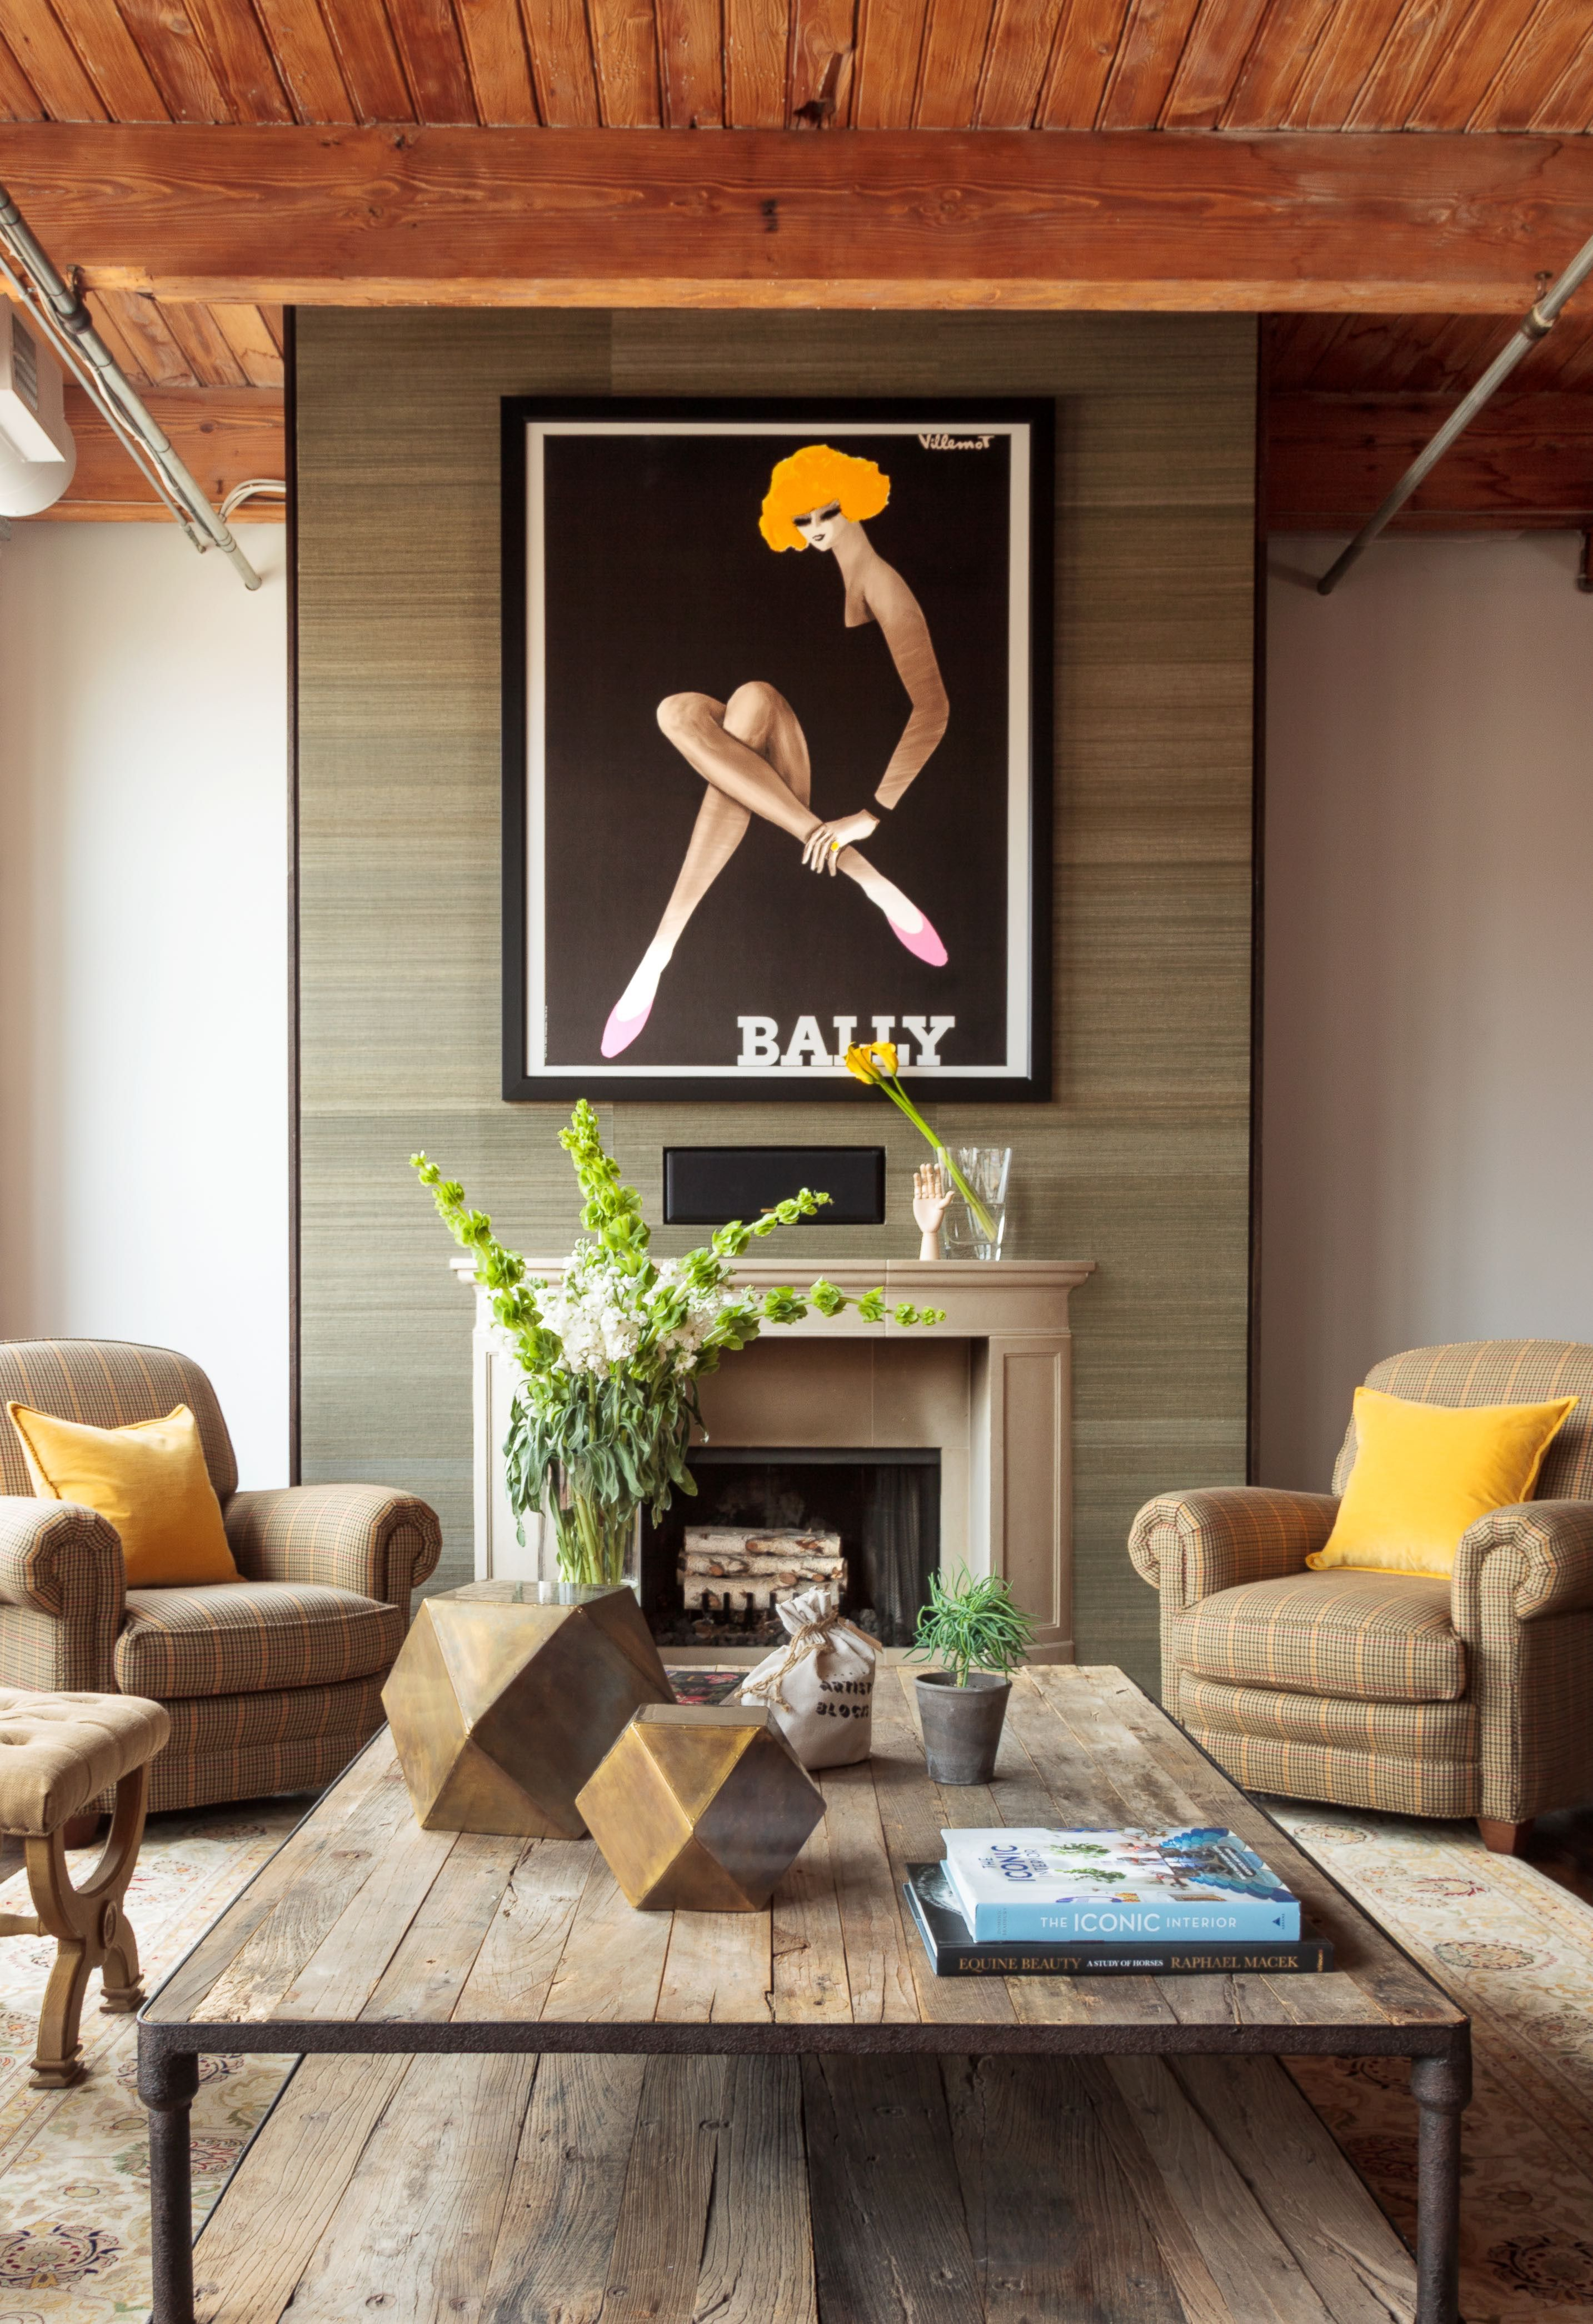 22 Stylish Accent Wall Ideas - How to Use Paint, Wood ...